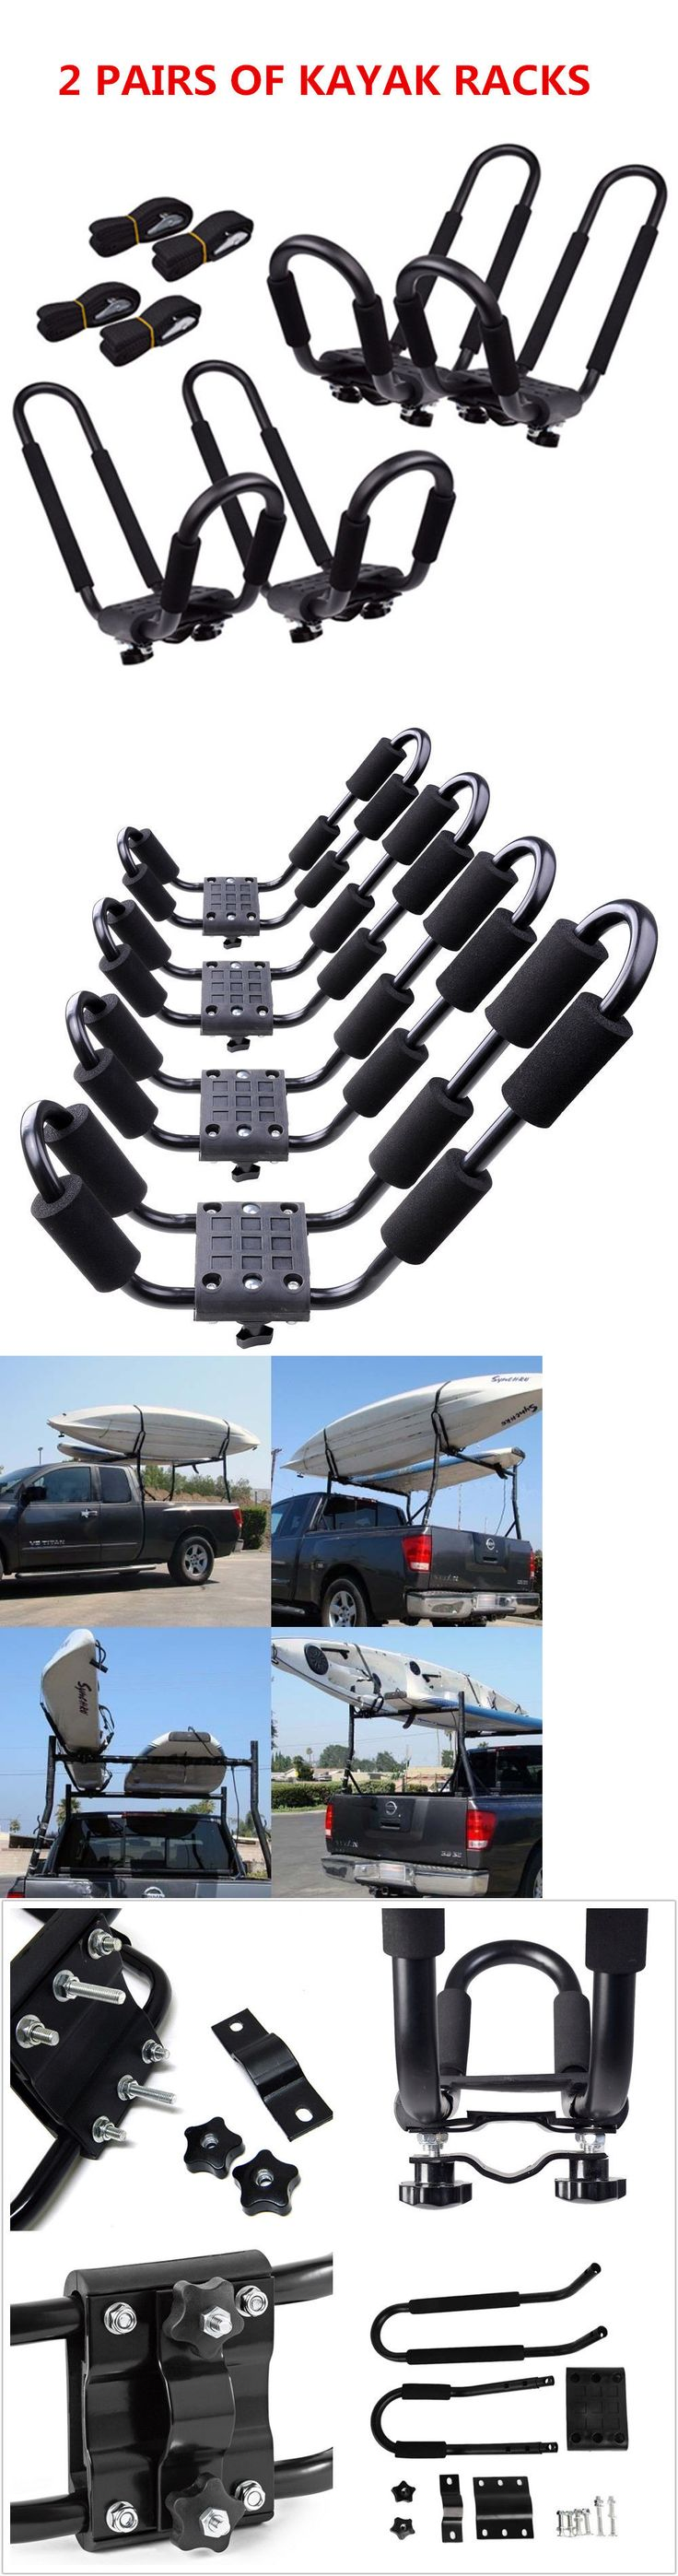 Best rack of the day car pictures - Accessories 87089 2 Pair Canoe Boat Kayak Roof Rack Car Suv Truck Top Mount Carrier